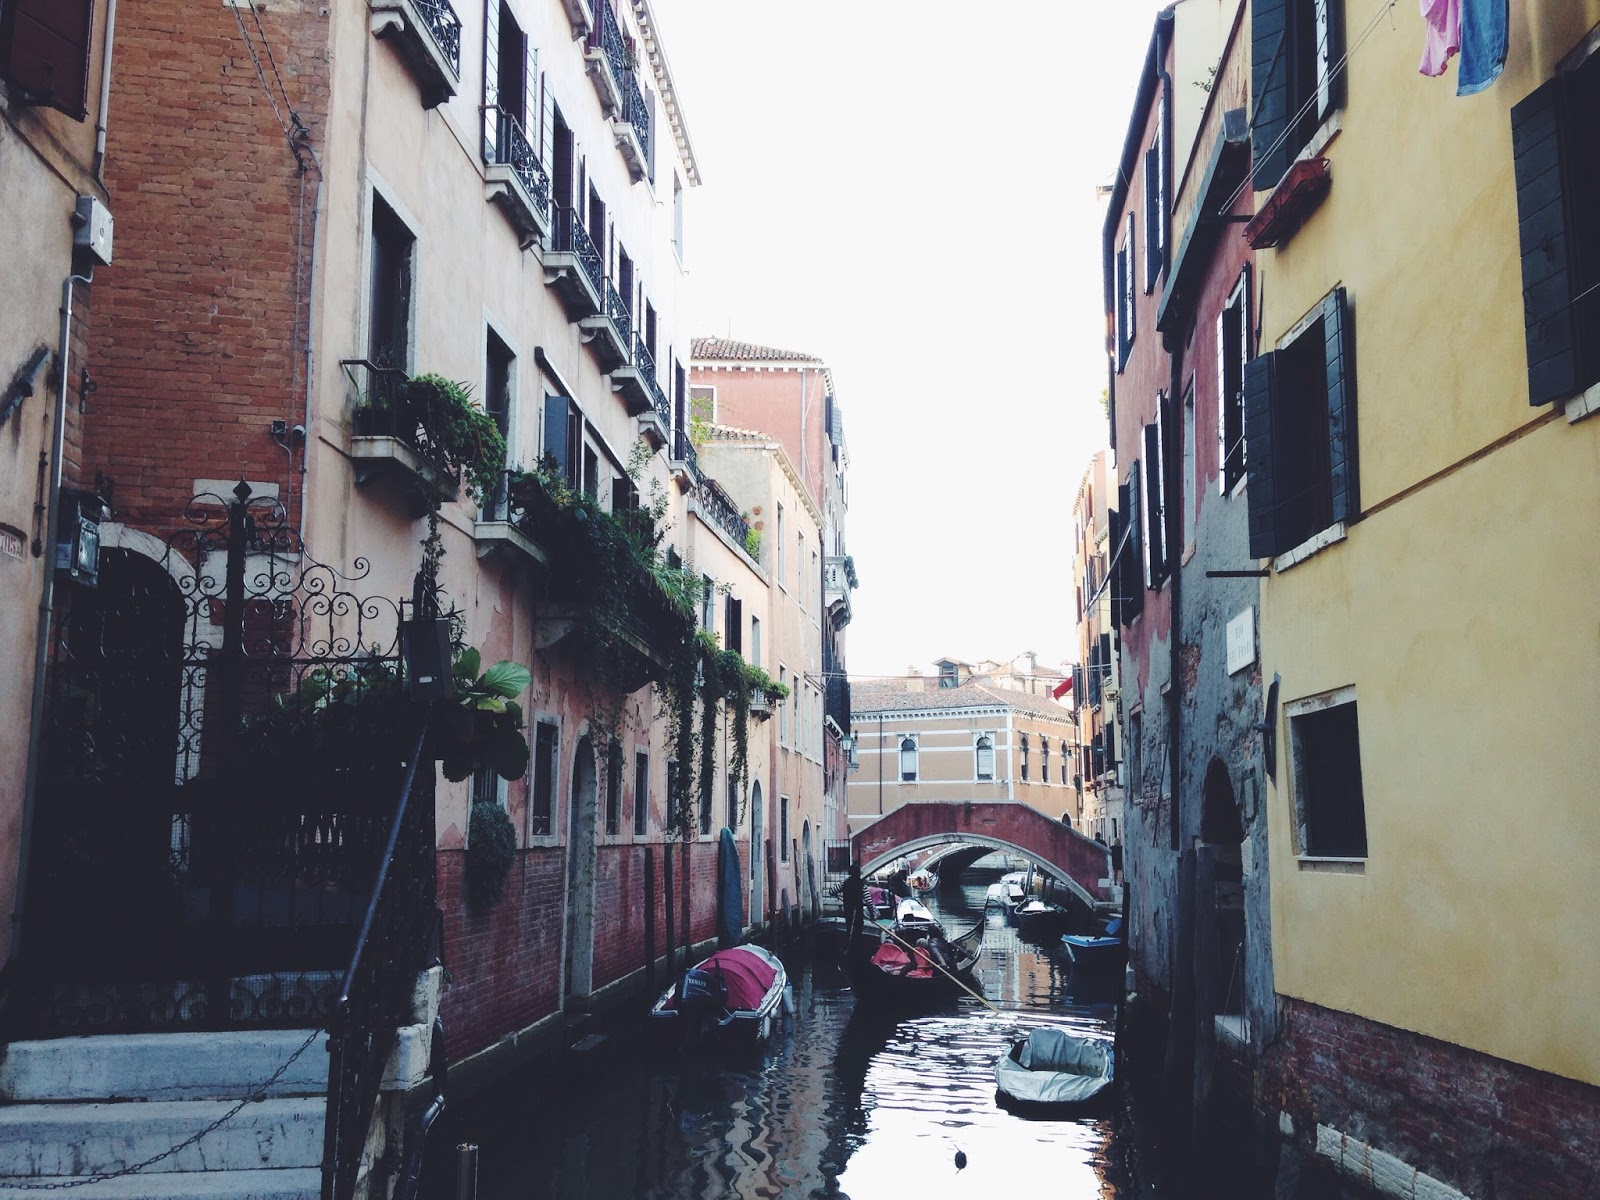 10 pictures to inspire a trip to Venice